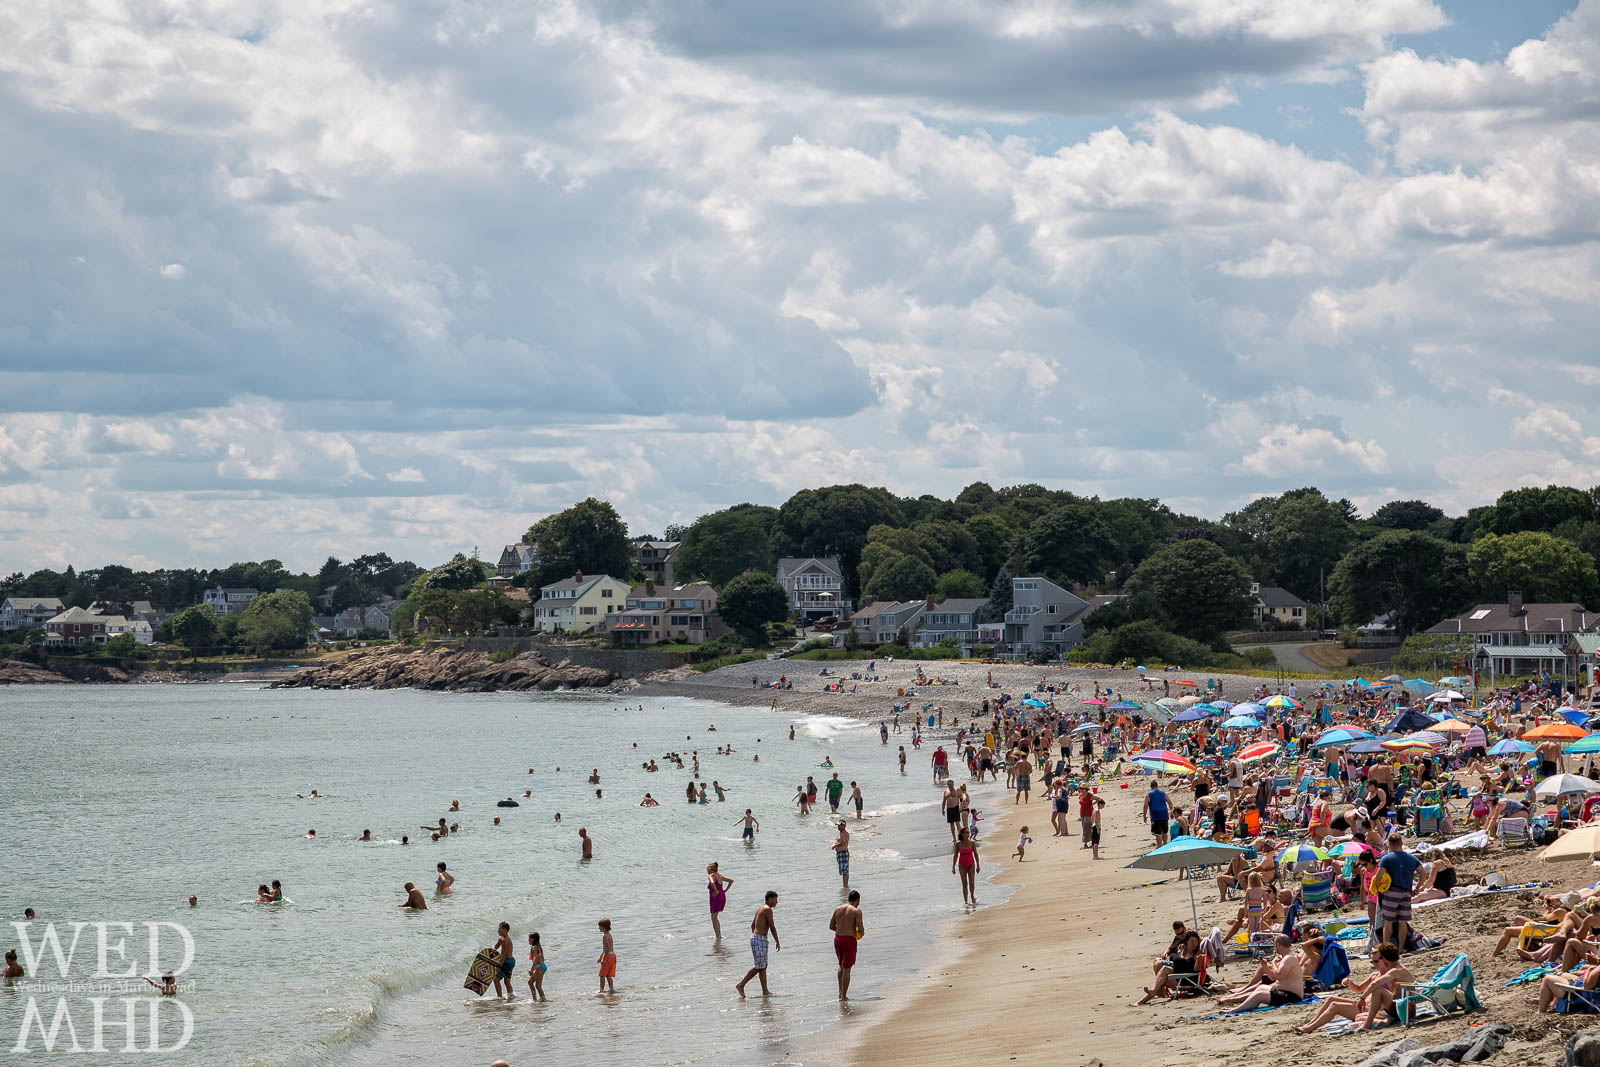 Perfect Summer day on Devereux Beach in Marblehead